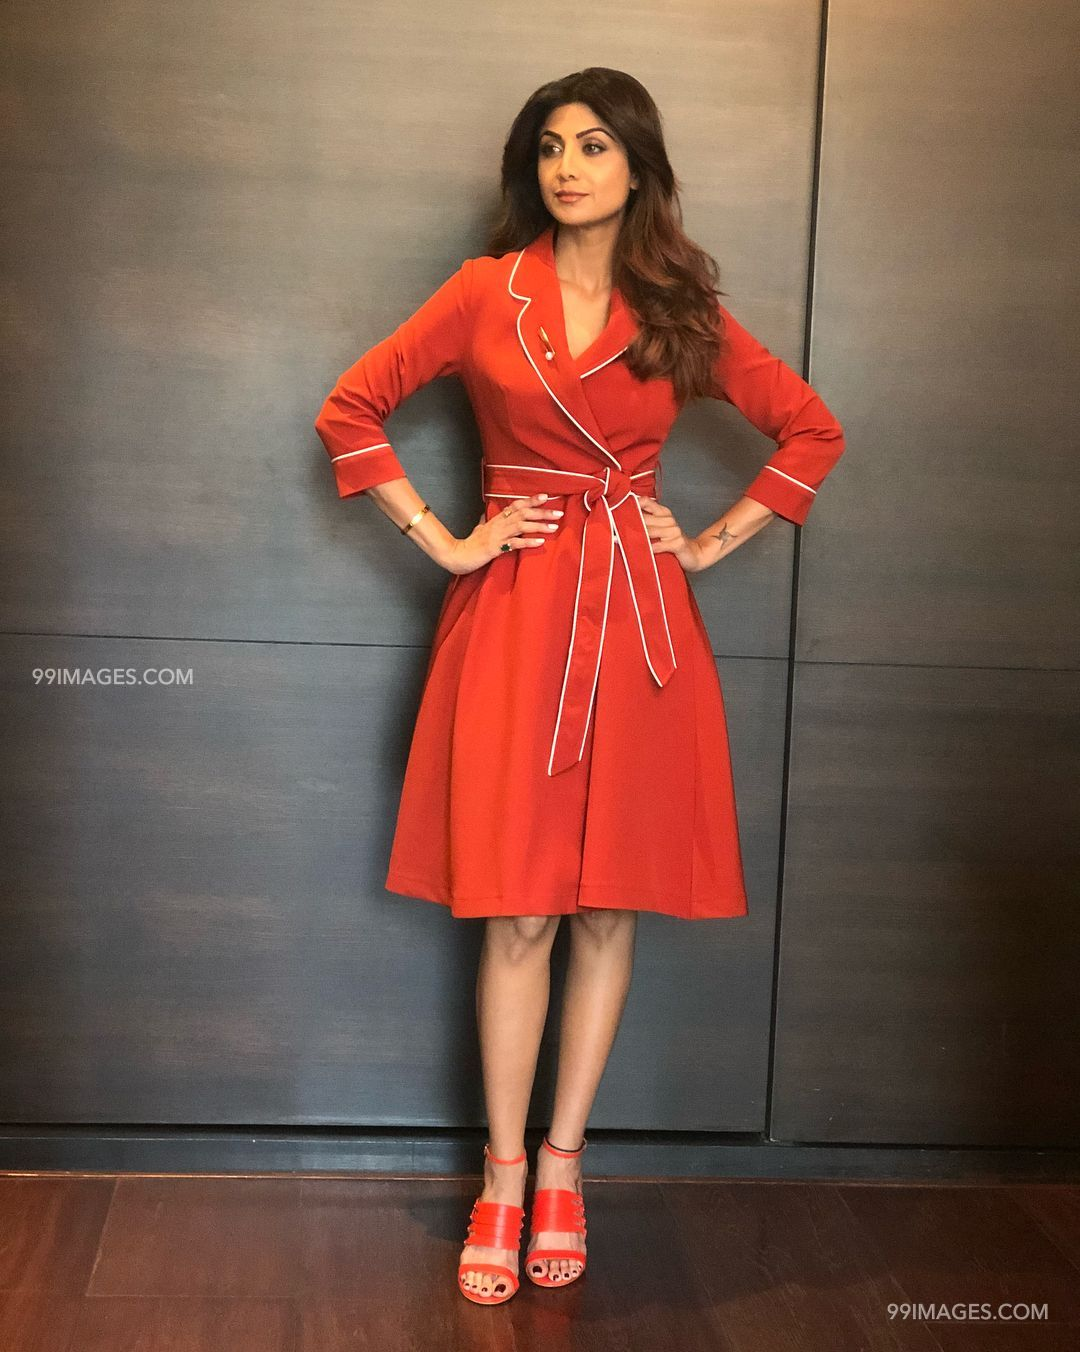 60 Shilpa Shetty Hot Hd Photos  Wallpapers For Mobile 1080P 2019-8931